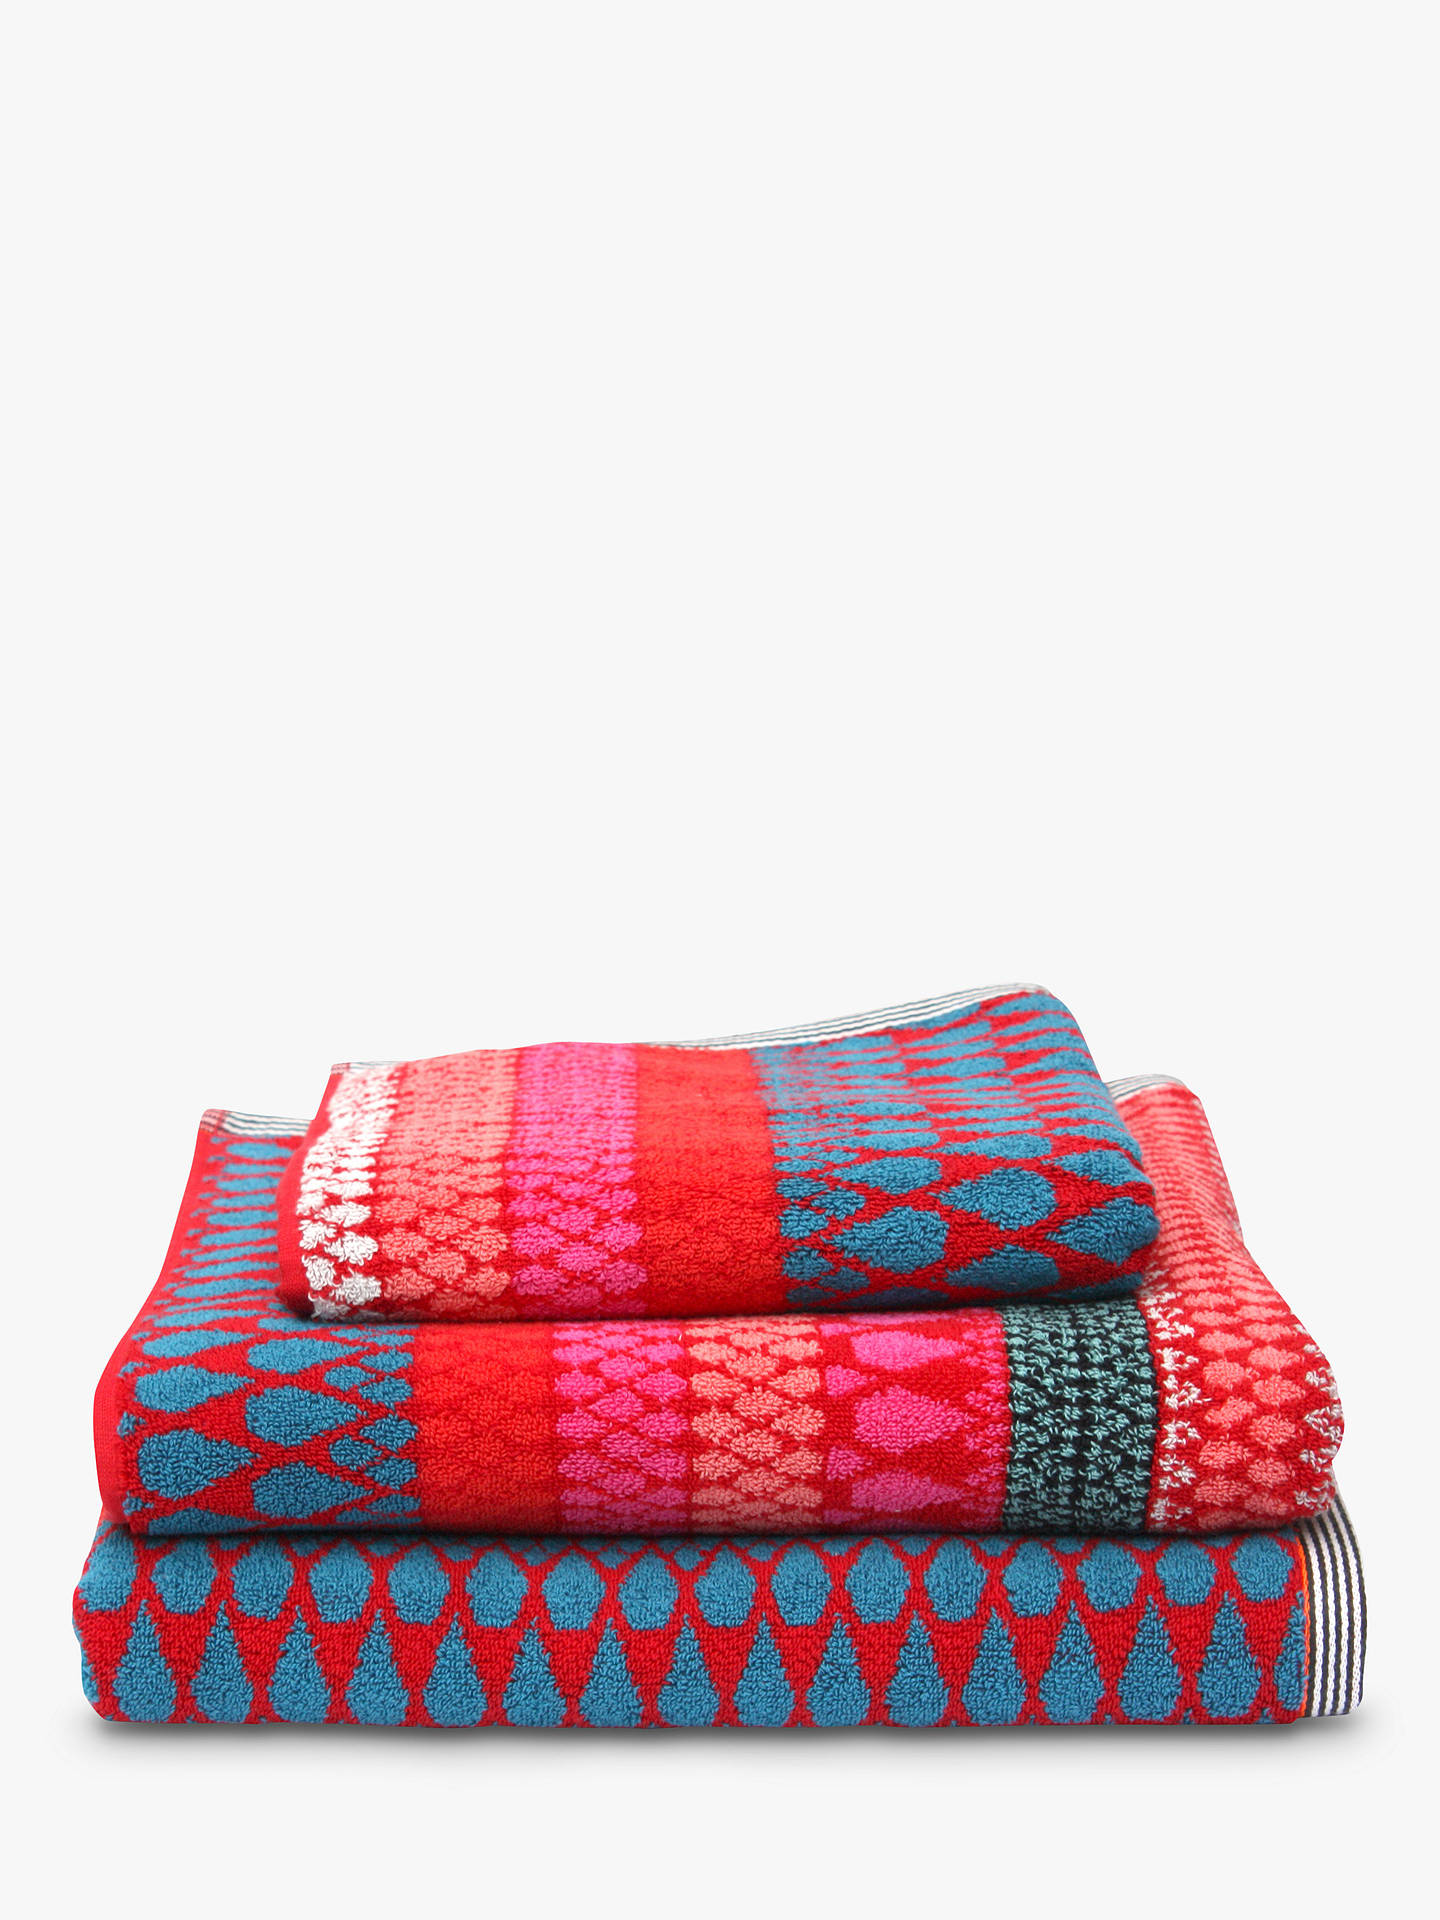 Buy Margo Selby for John Lewis Faversham Hand Towel, Red Online at johnlewis.com